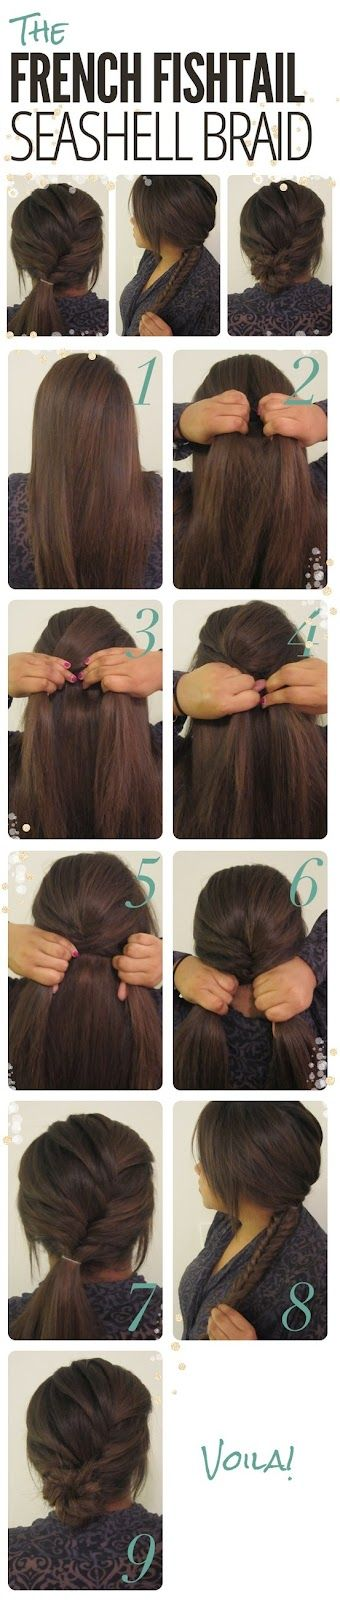 easy low bun/braid :) you can keep it in the 7th step and add a ribbon to your pony tail or go all the way to the 9th step for a messy bun effect.